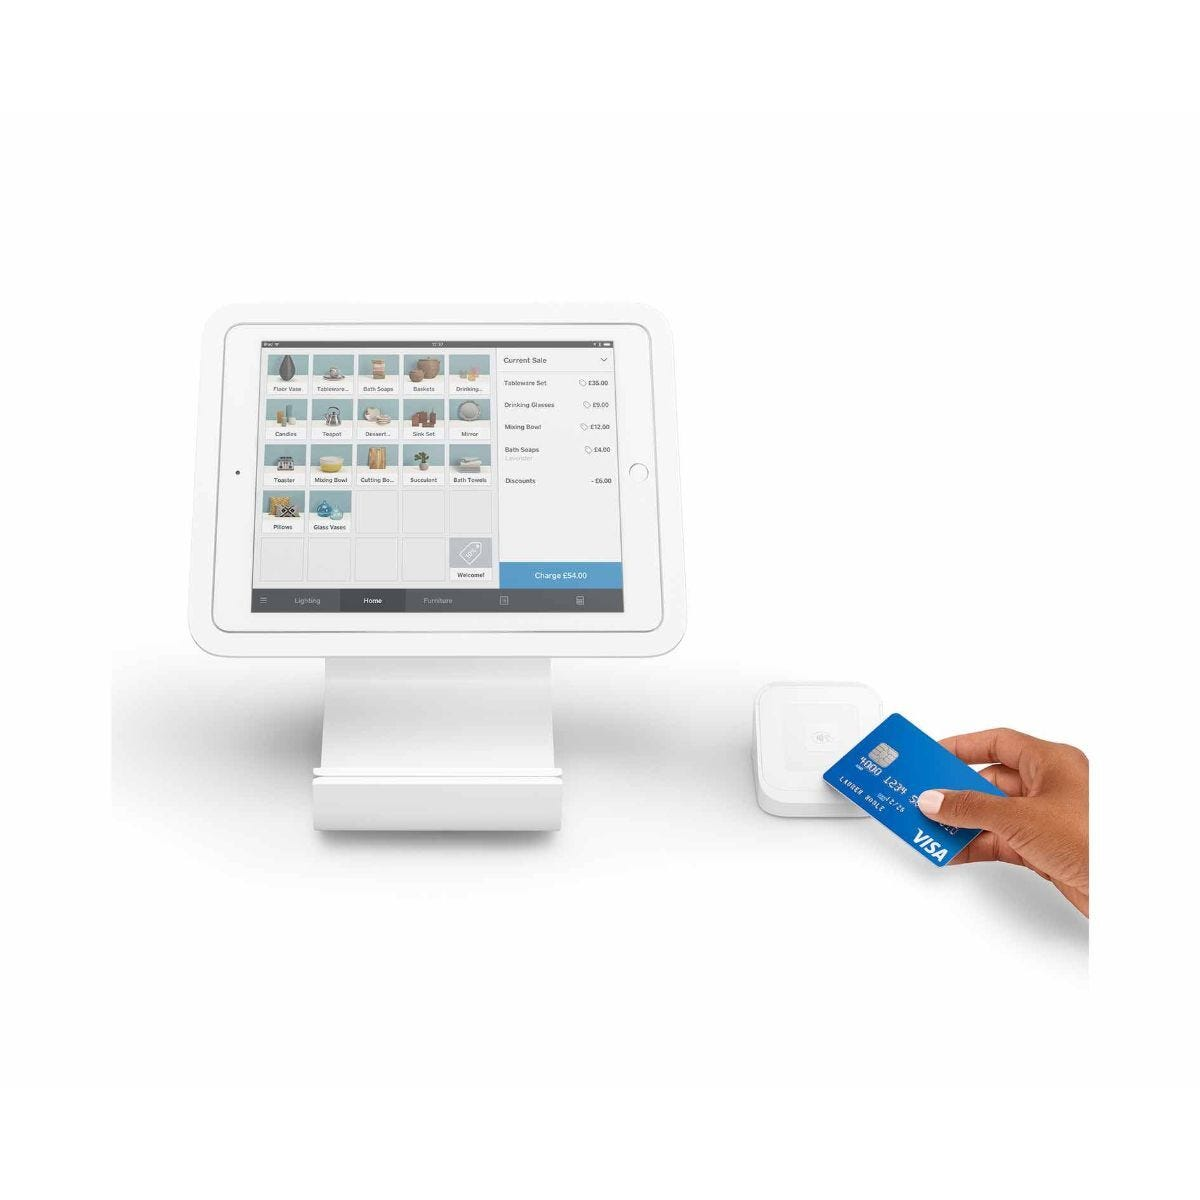 Square Stand Bundle Including Card Payment Reader and Dock